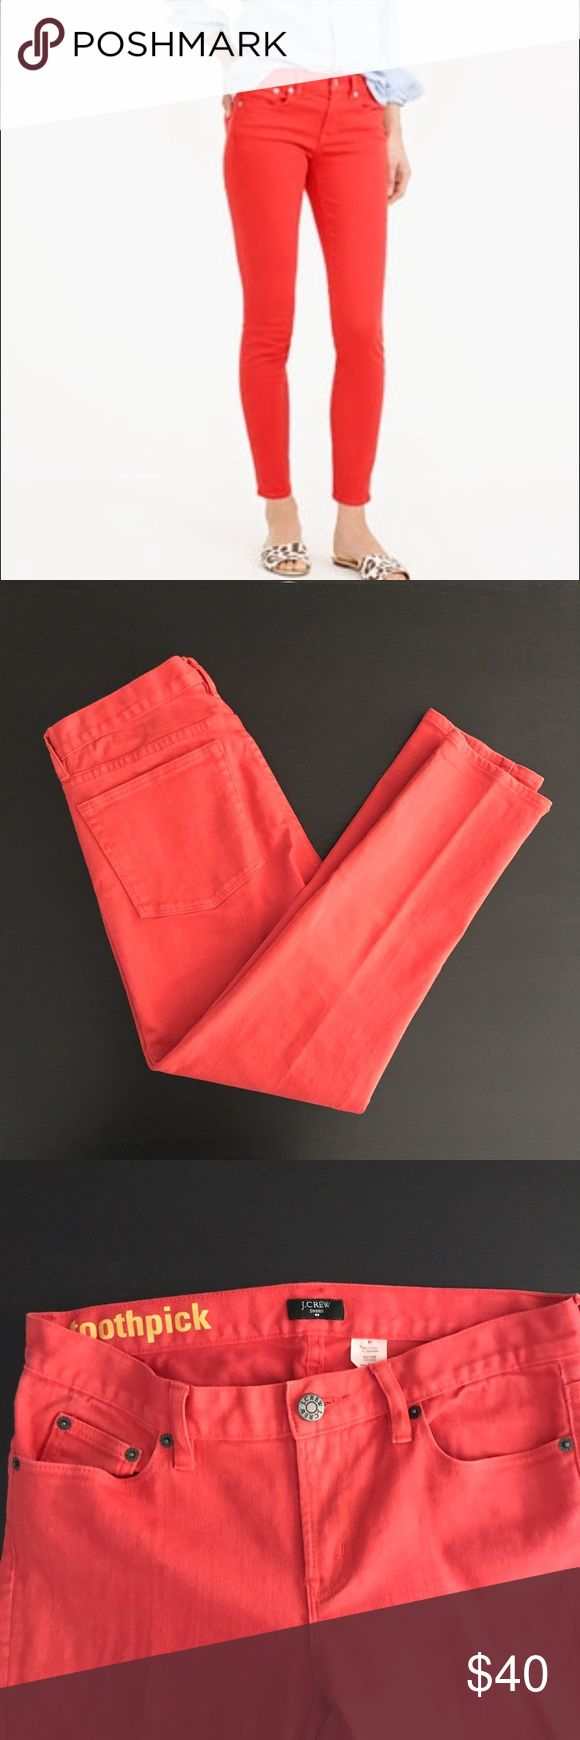 "J. Crew Factory Orange Red Skinny Ankle Jeans Excellent preowned condition, Cropped ankle jeans with a little bit of stretch. Color is like a coral color. Approximate measurements when laid flat: 15"" waist, 8"" rise, 26"" inseam. J. Crew Factory Jeans Ankle & Cropped"